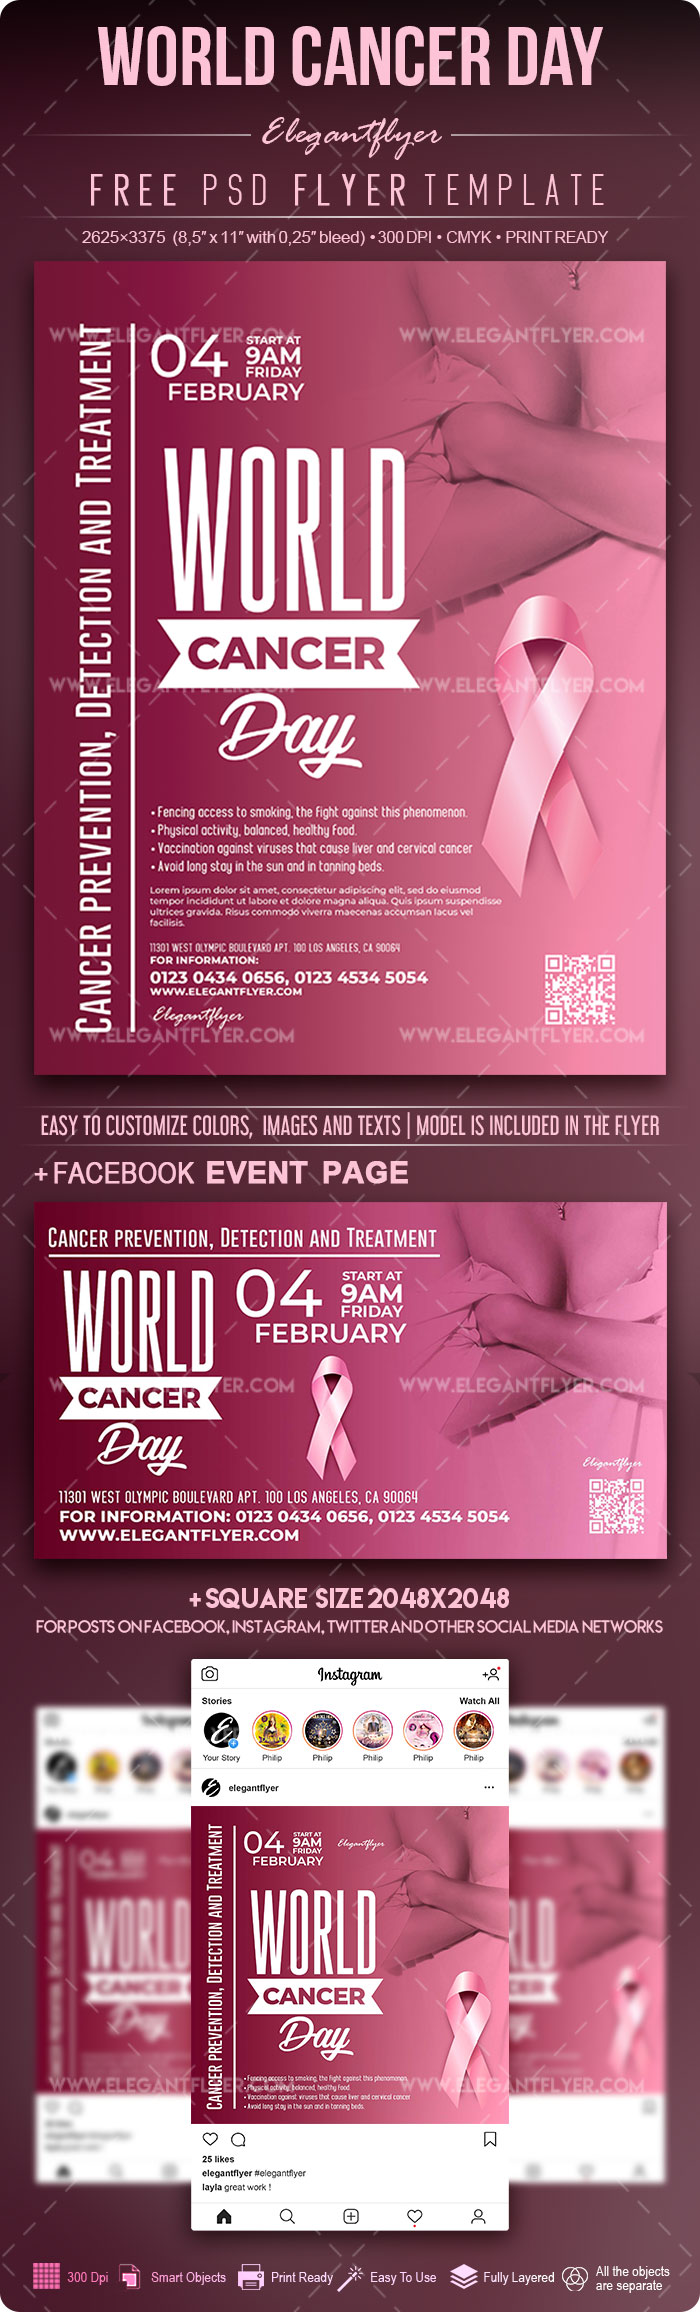 World Cancer Day – Free Flyer PSD Template